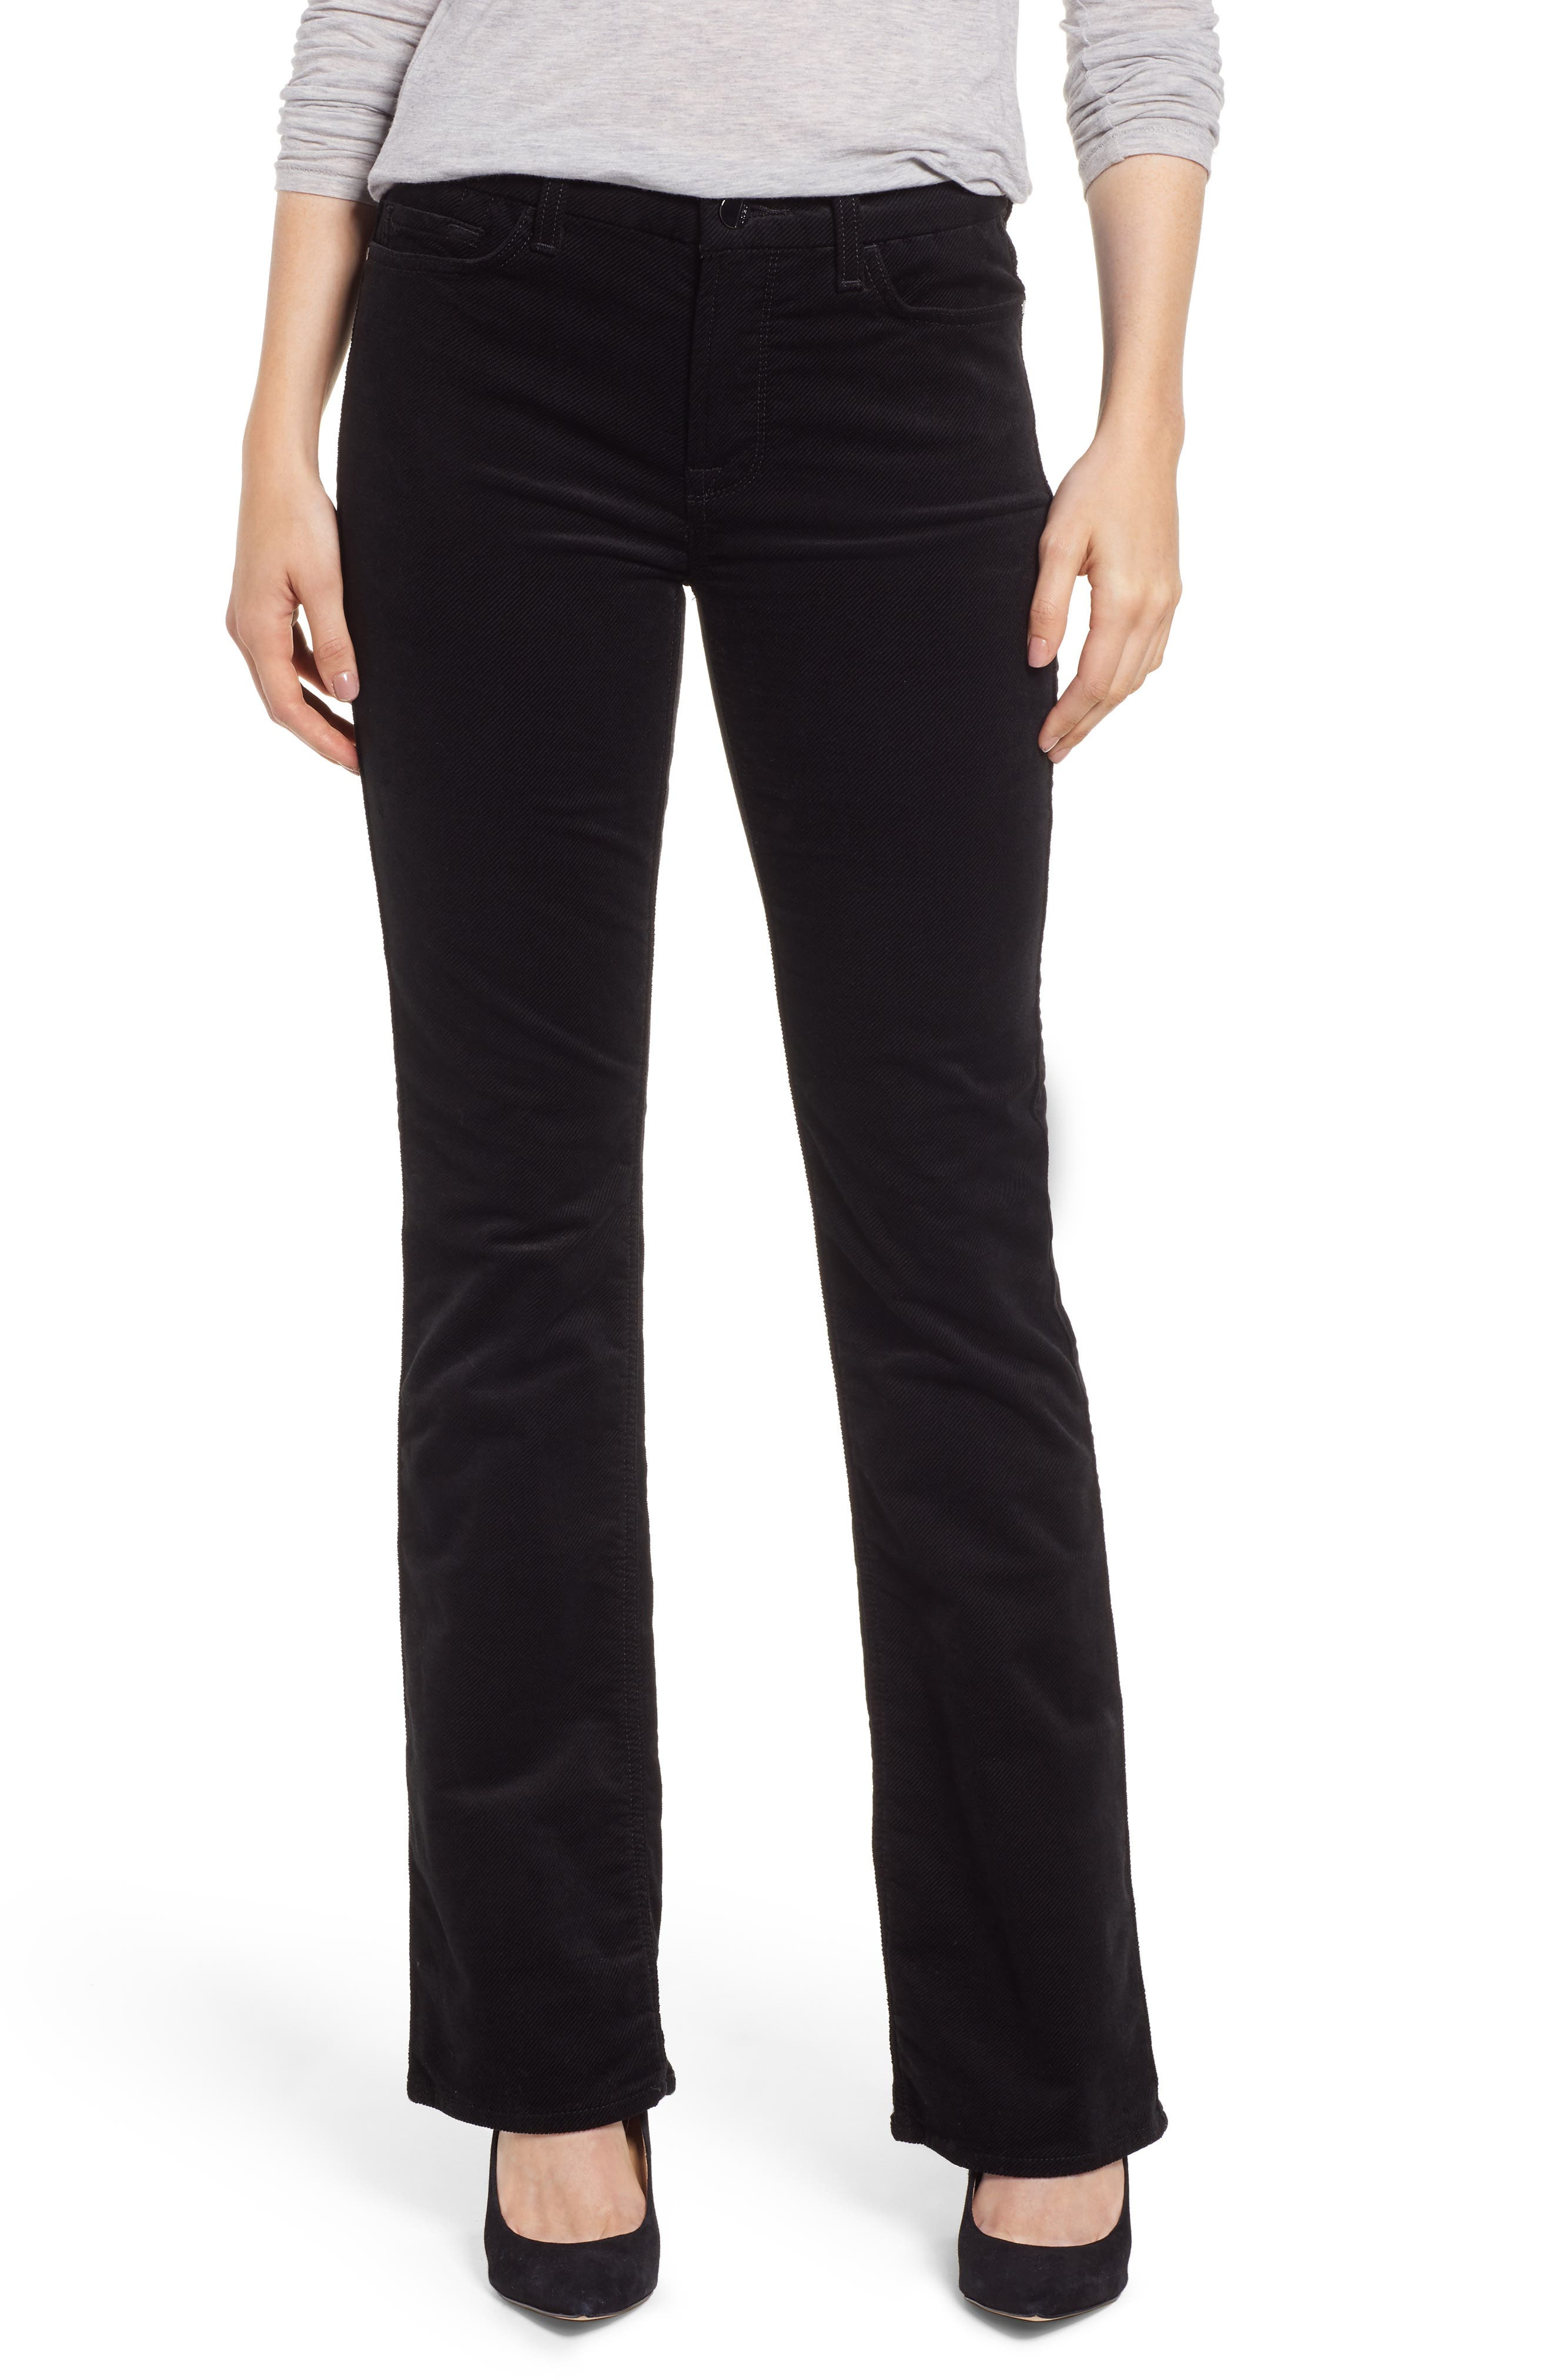 JEN7 BY 7 FOR ALL MANKIND Baby Corduroy Slim-Fit Bootcut Jeans in Black